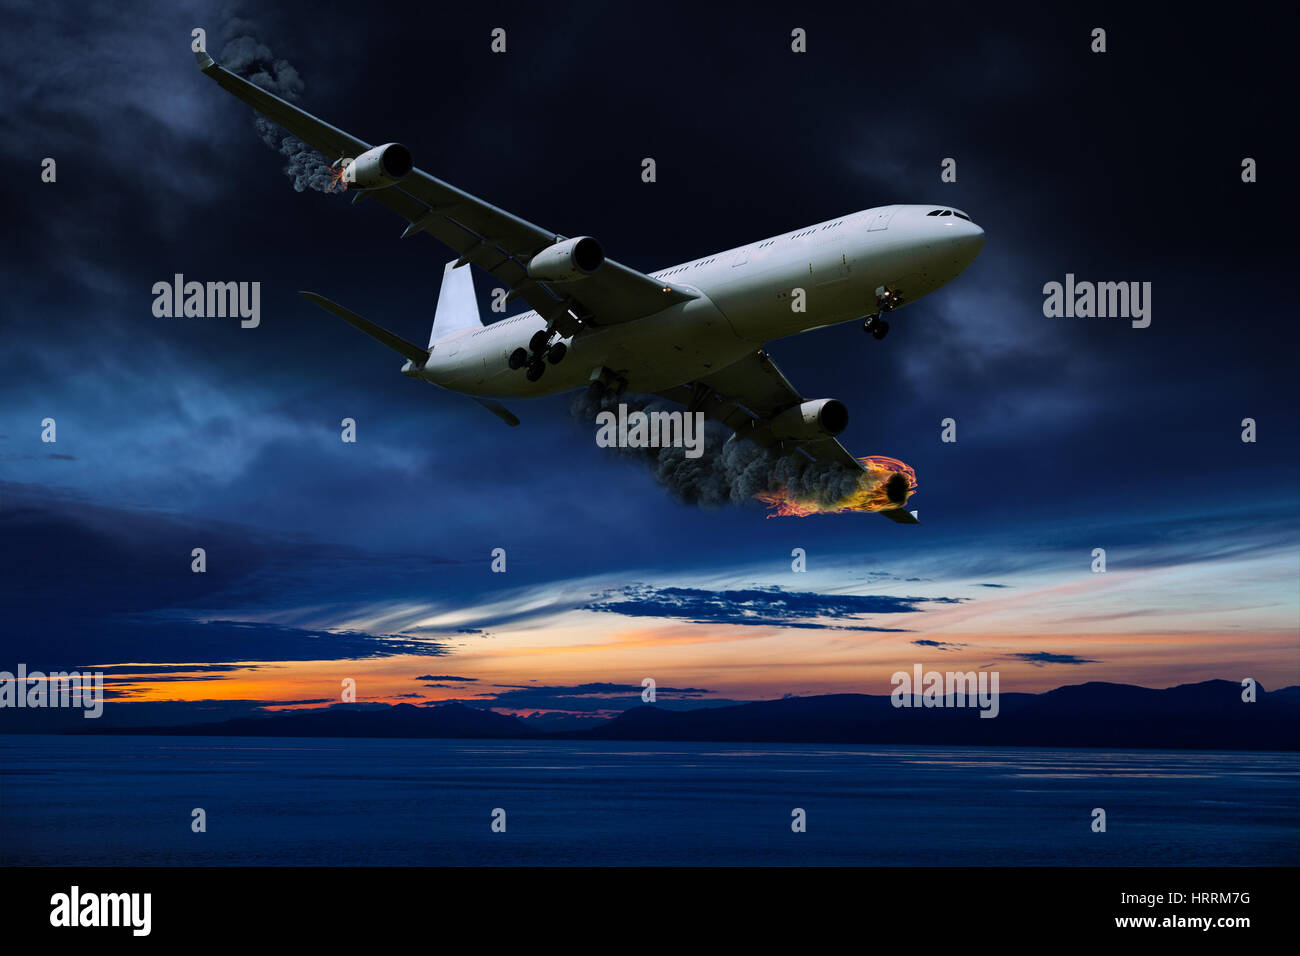 Cinematic portrayal of a fictitious plane in distress flying over the ocean at sunrise with its engines on fire. - Stock Image